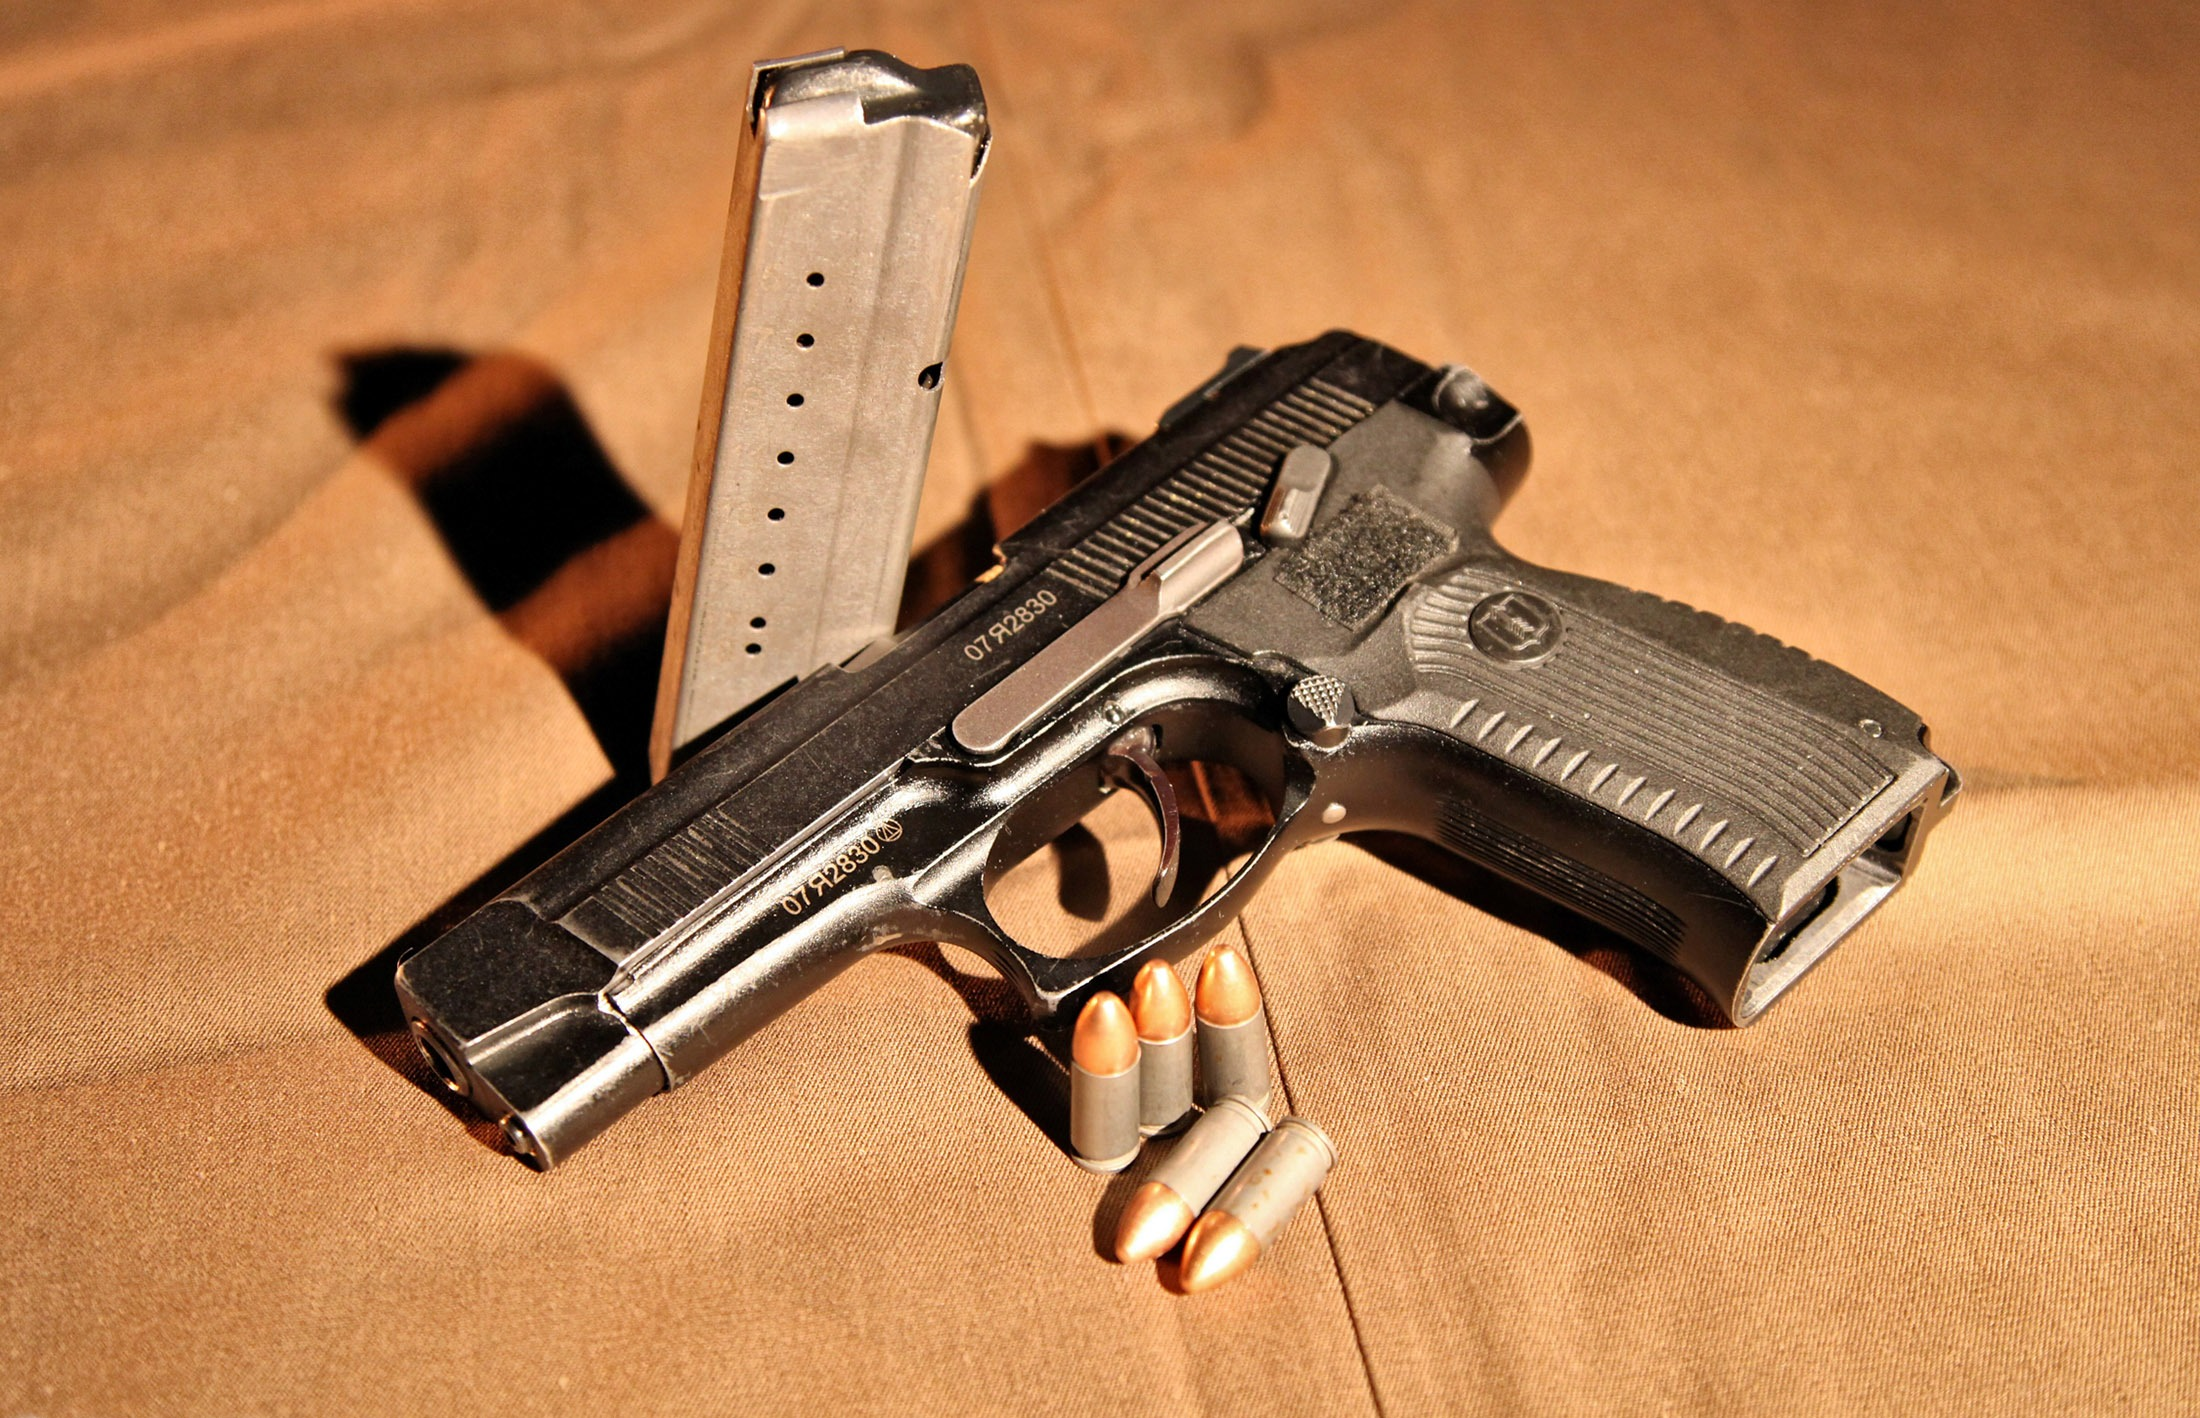 Russia's Handguns Are Only Built for One Thing: Tough and Bloody Wars - Warrior Maven